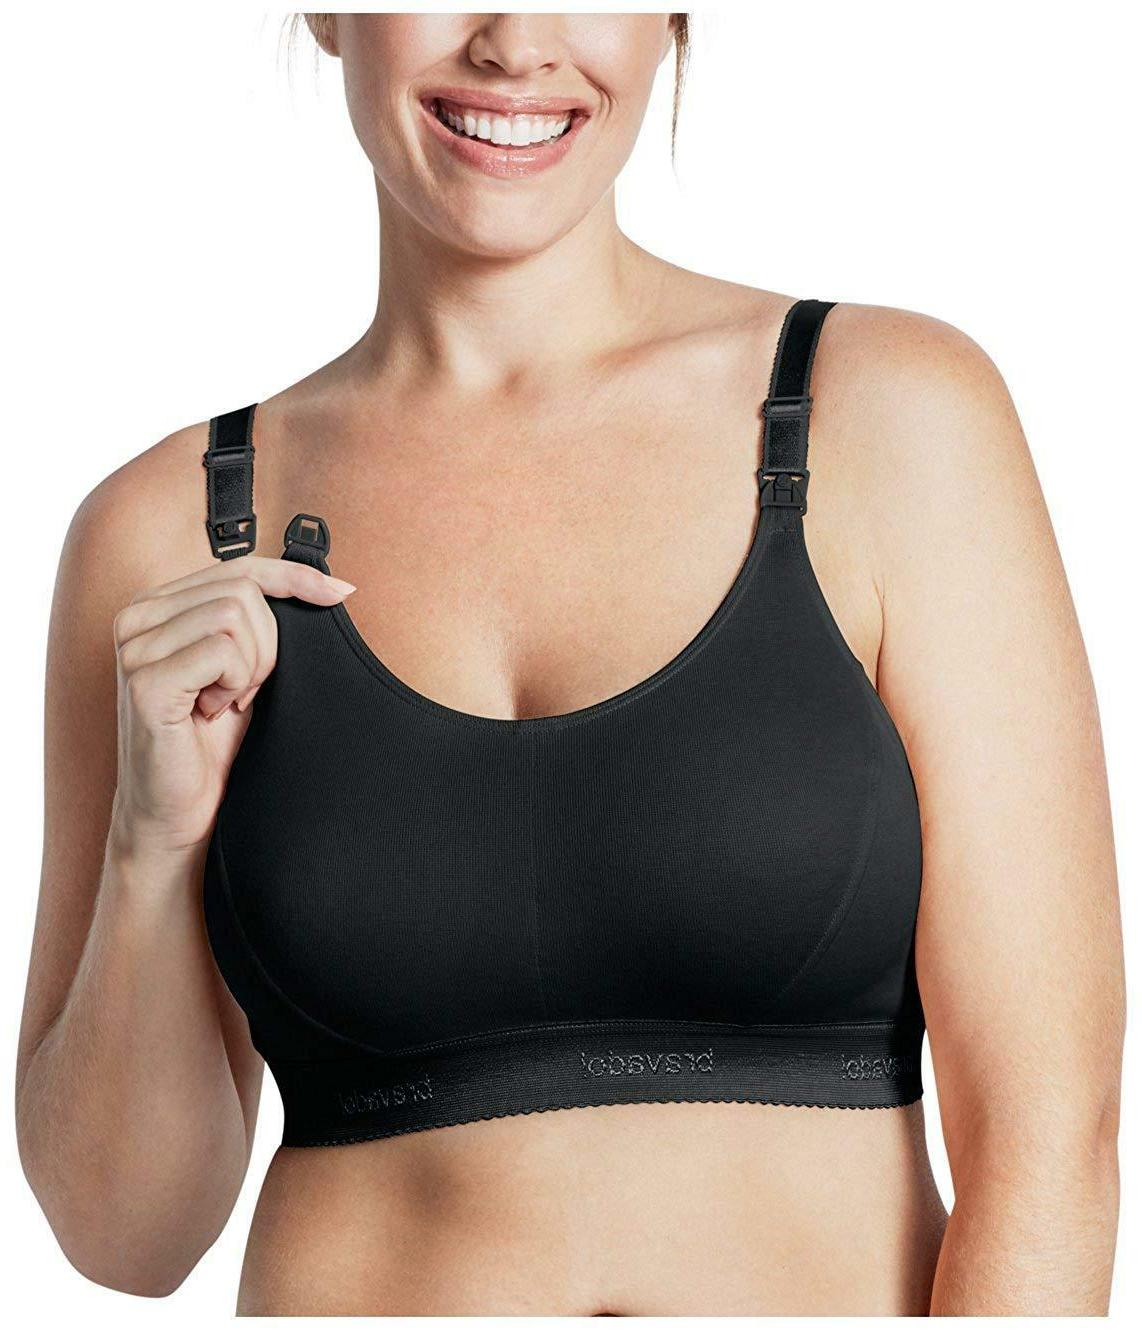 1013 original double plus nursing bra in